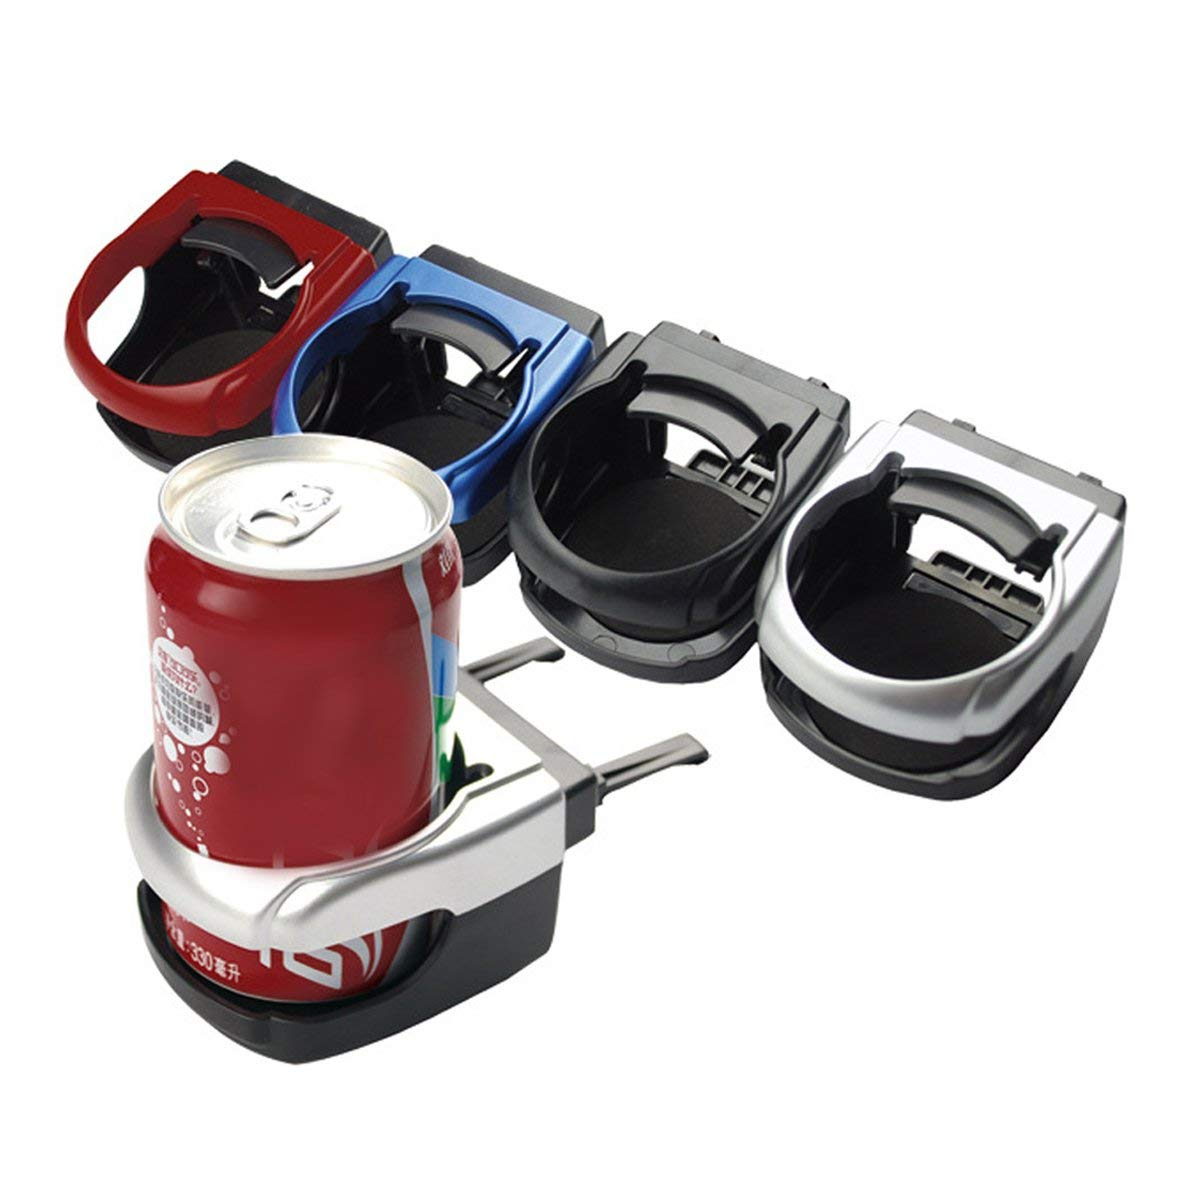 Noradtjcca Auto Car Air Vent Bottle Can Coffee Drinking Cup Holder Bracket Mount Tray Multifunctional Car Cup Holder Interior Organizer